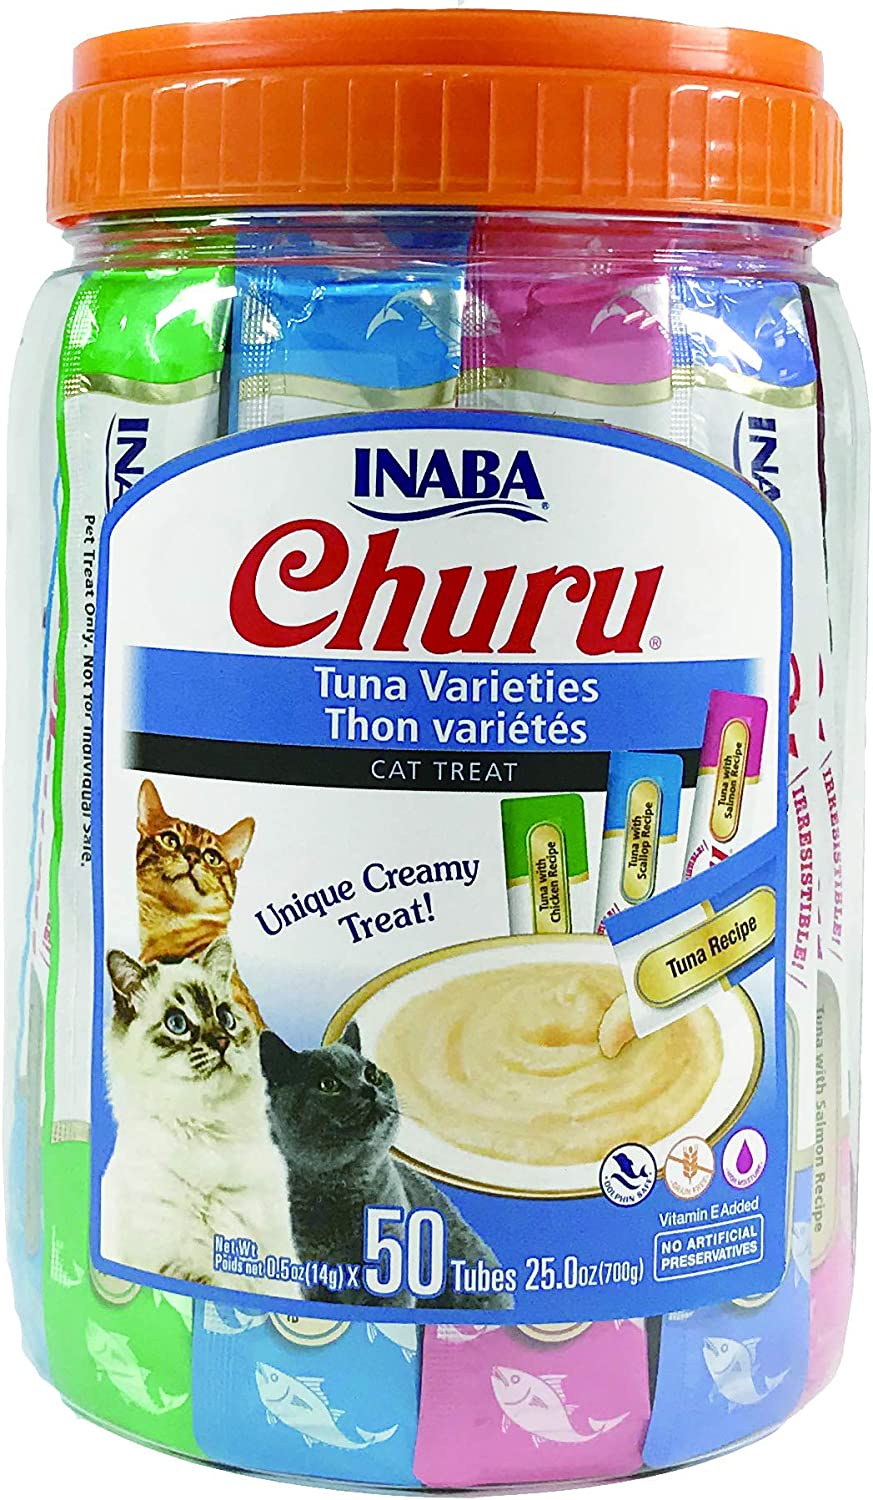 INABA Churu Tuna Lickable Creamy Purée Cat Treats 4 Flavor Variety Pack of 50 Tubes